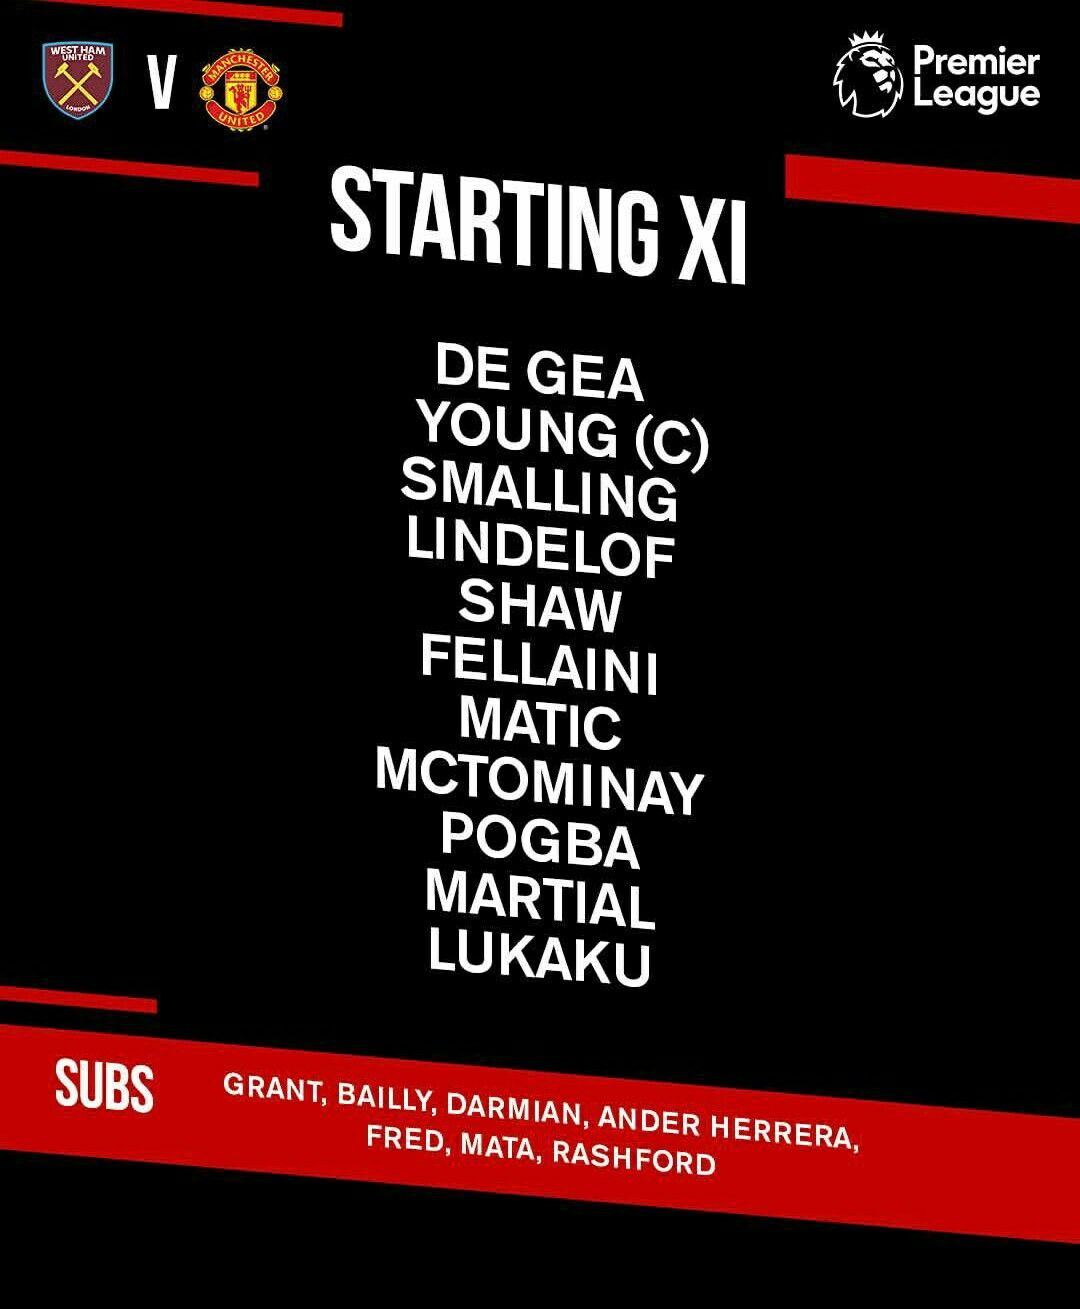 Starting Xi Vs West Ham Manchester United Manchester The Unit